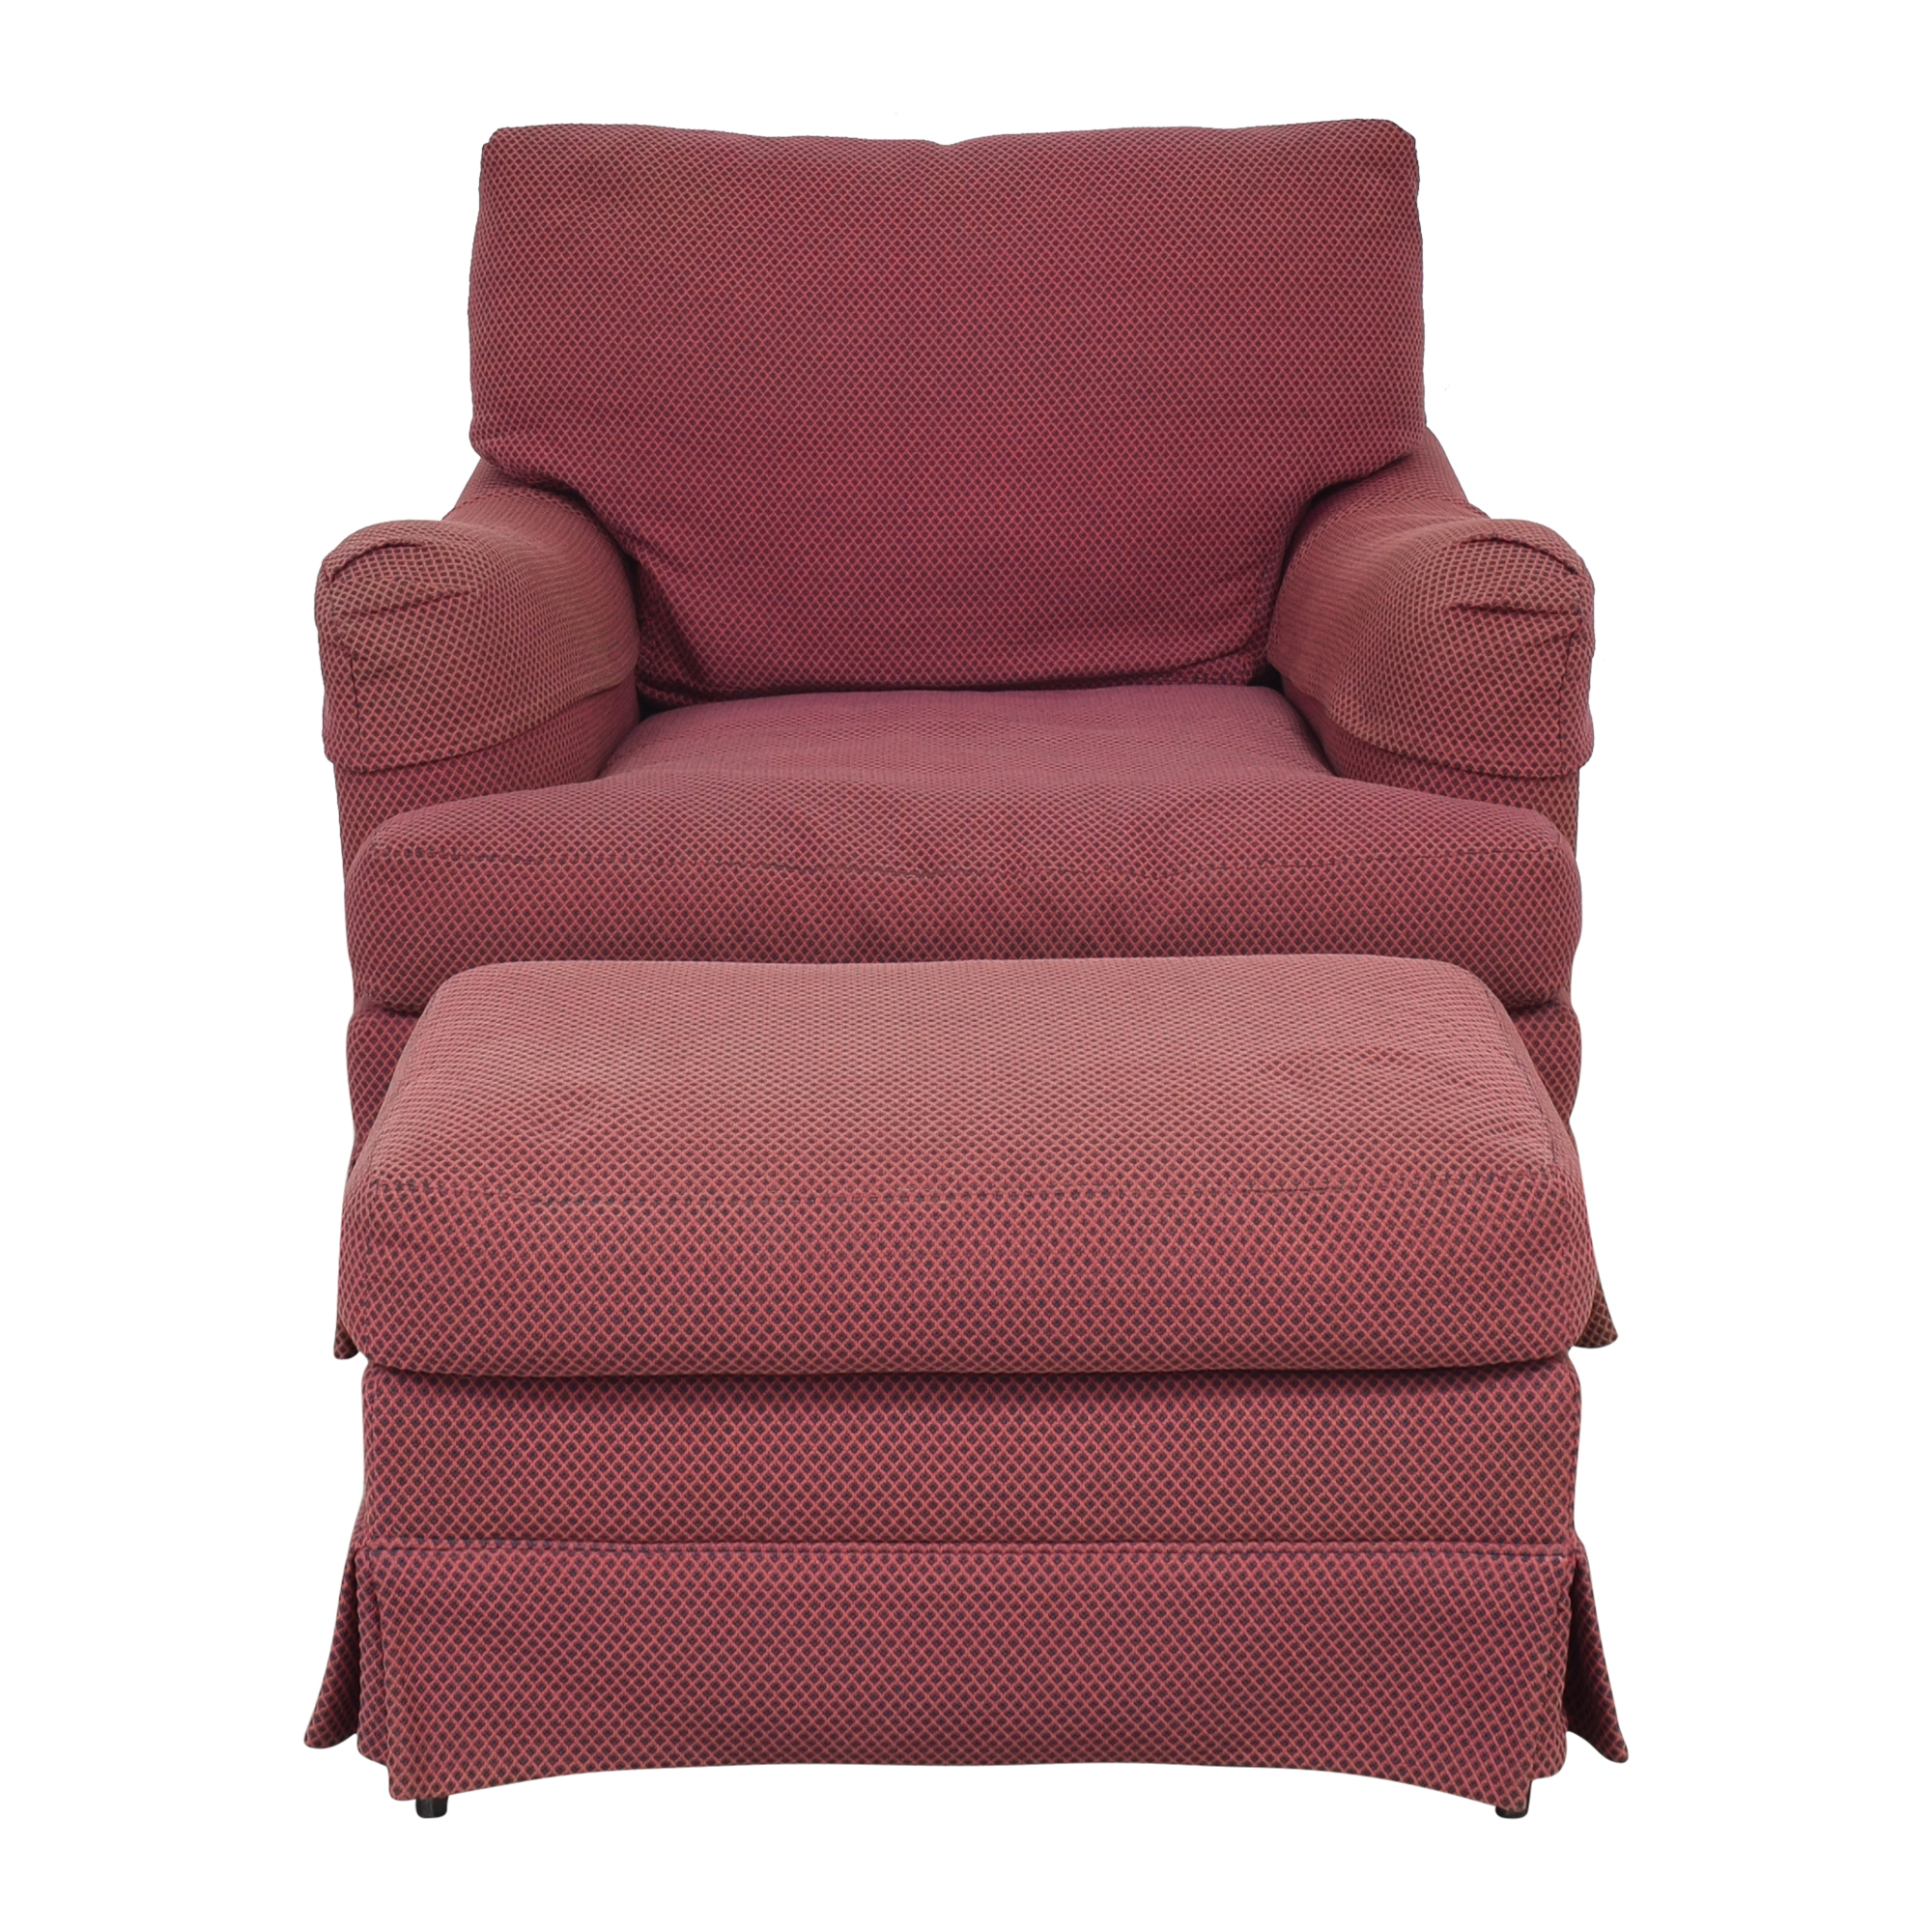 buy Sherrill Reading Chair with Ottoman Sherrill Furniture Chairs